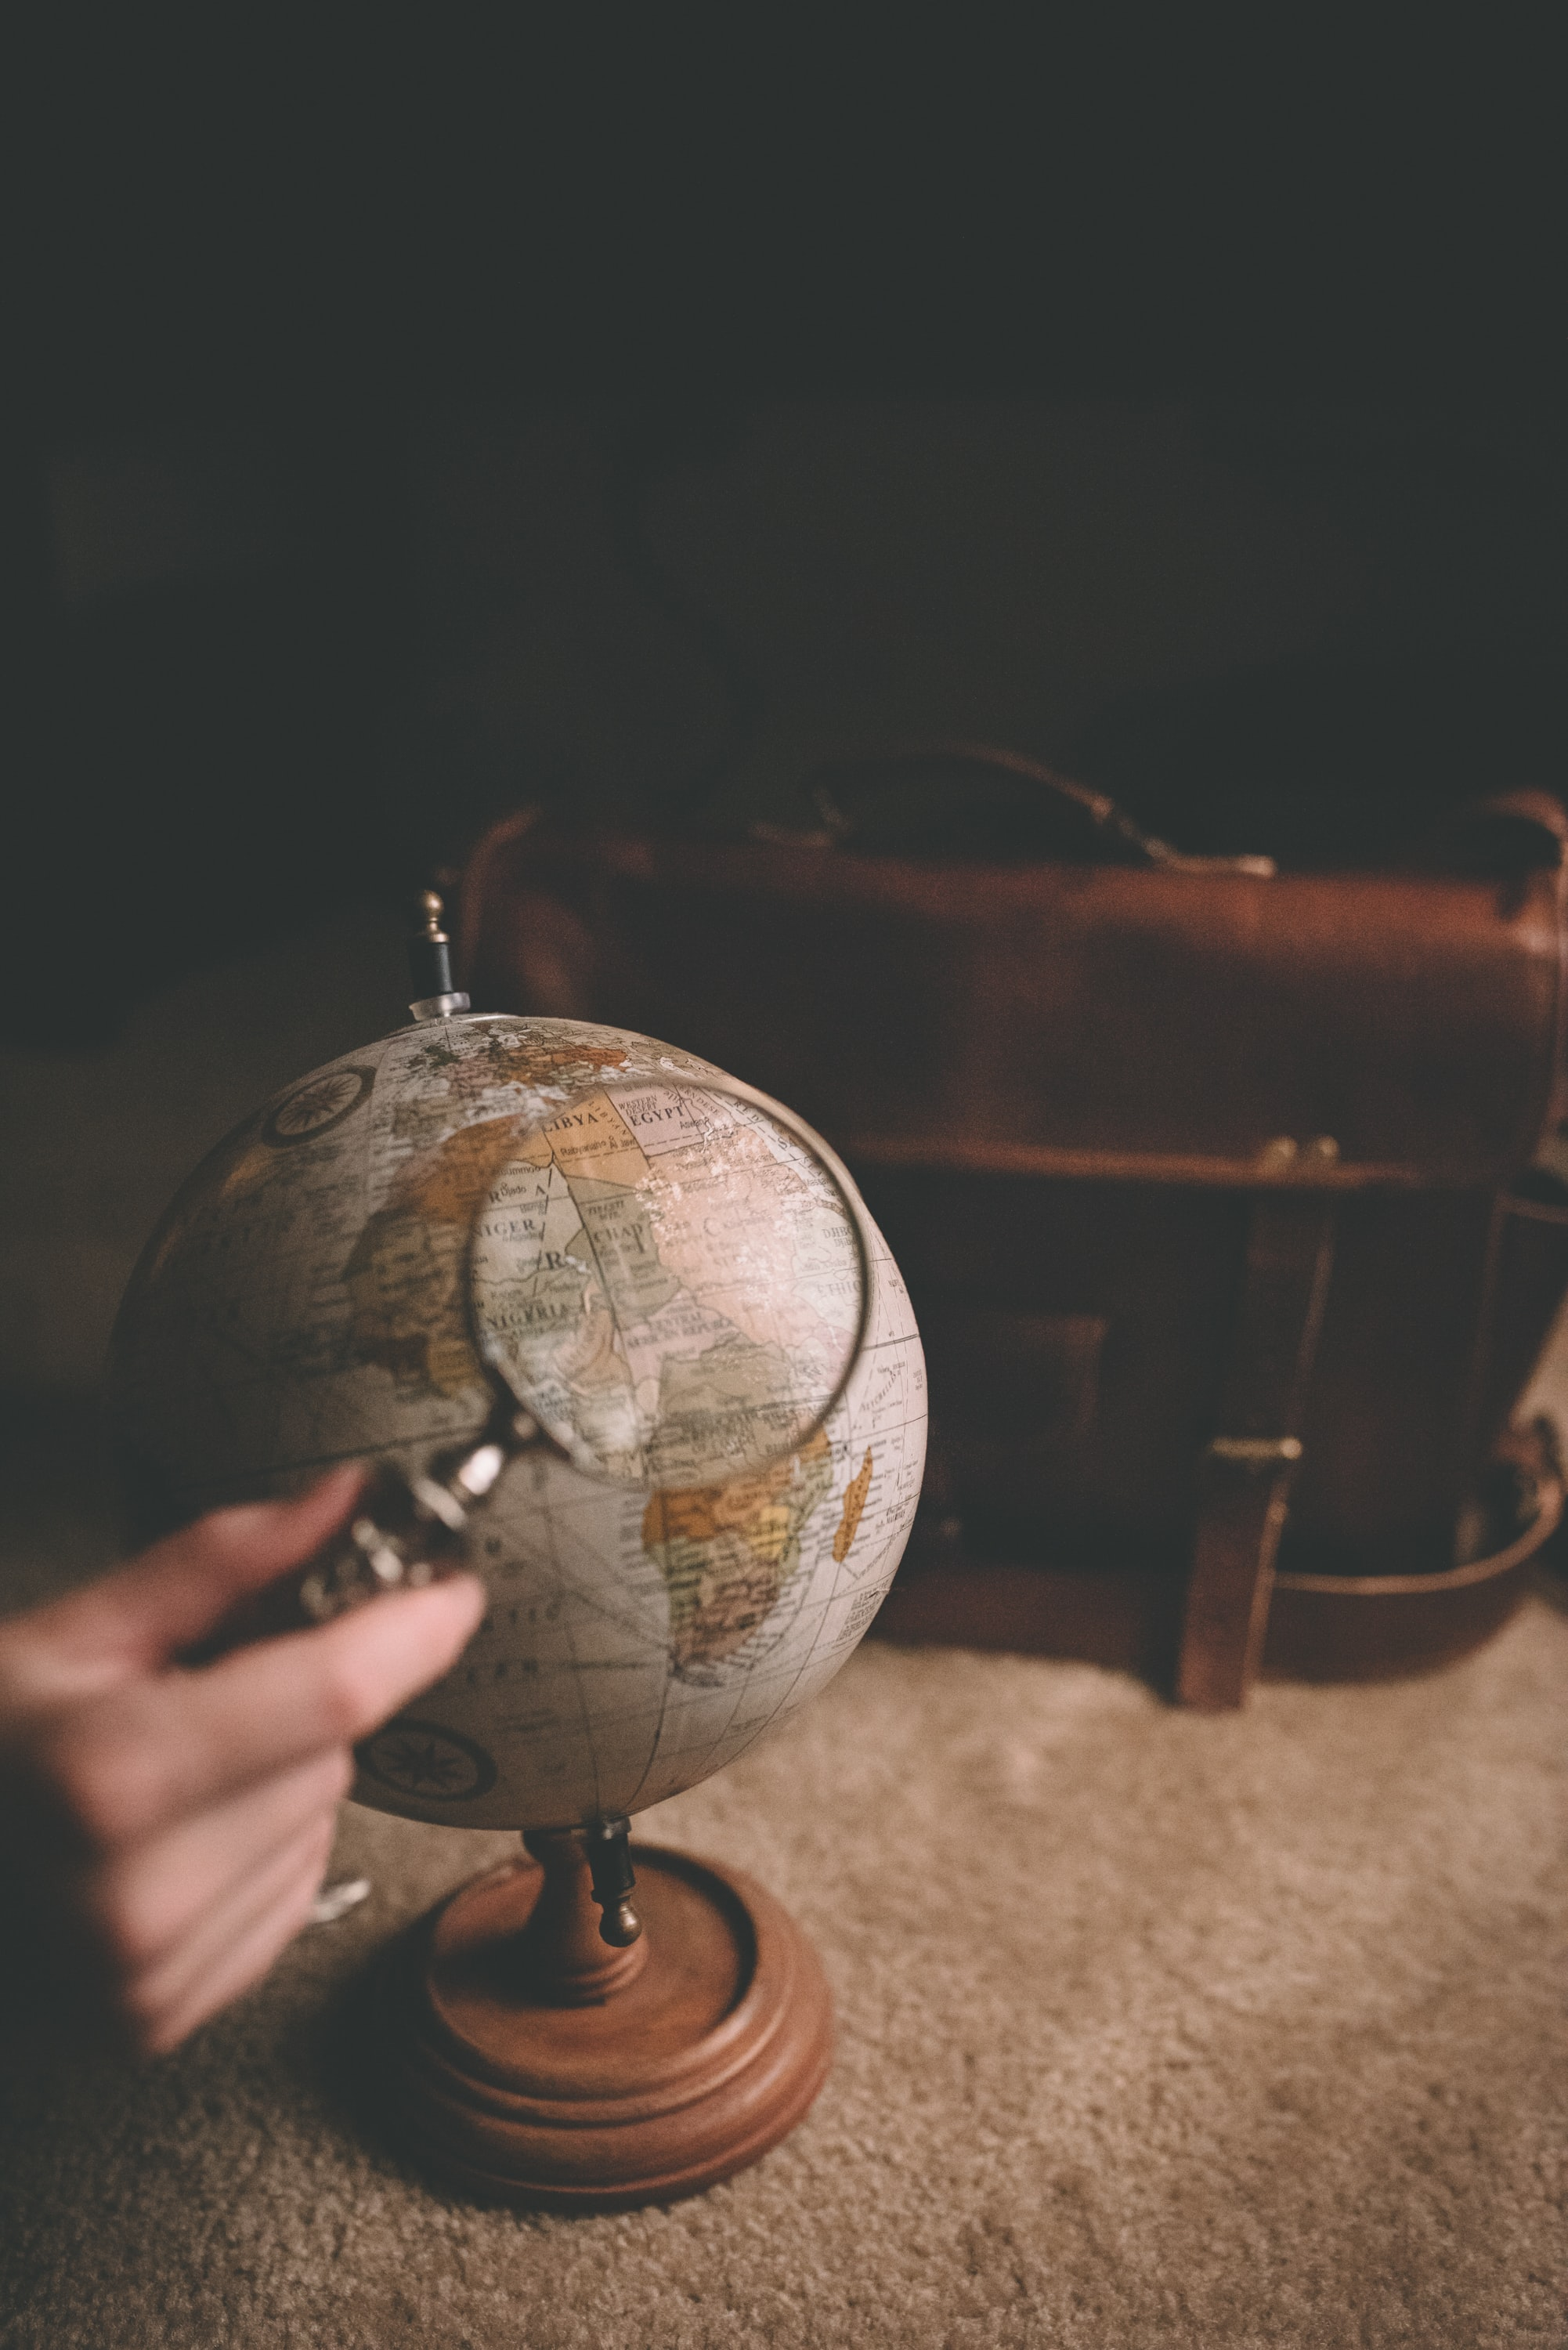 A person's hand holding a magnifying glass over an area on a globe